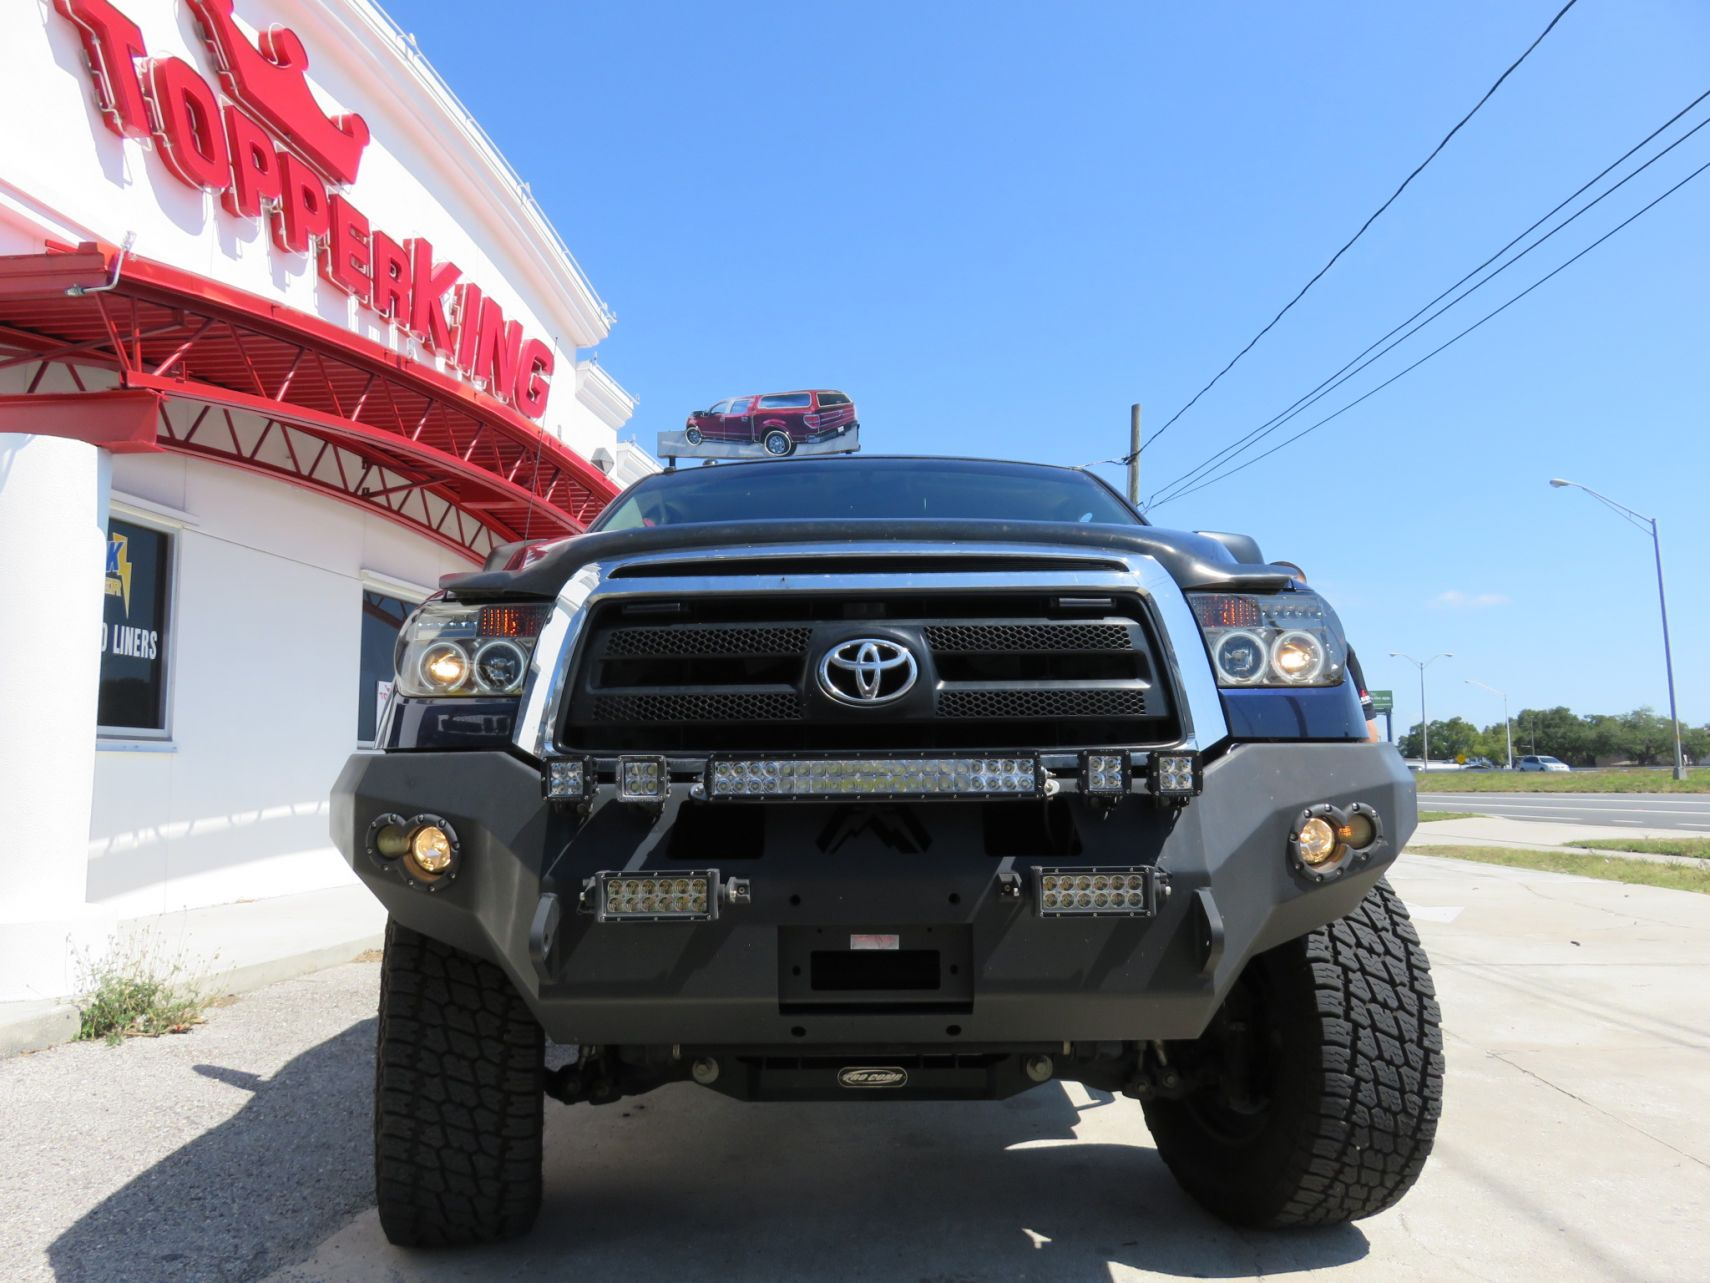 2013 Toyota Tundra Ranch SportWrap, Lighted Bumper, Tint, Nerf Bars by TopperKING in Brandon, FL 813-689-2449 or Clearwater, FL 727-530-9066. Call today!